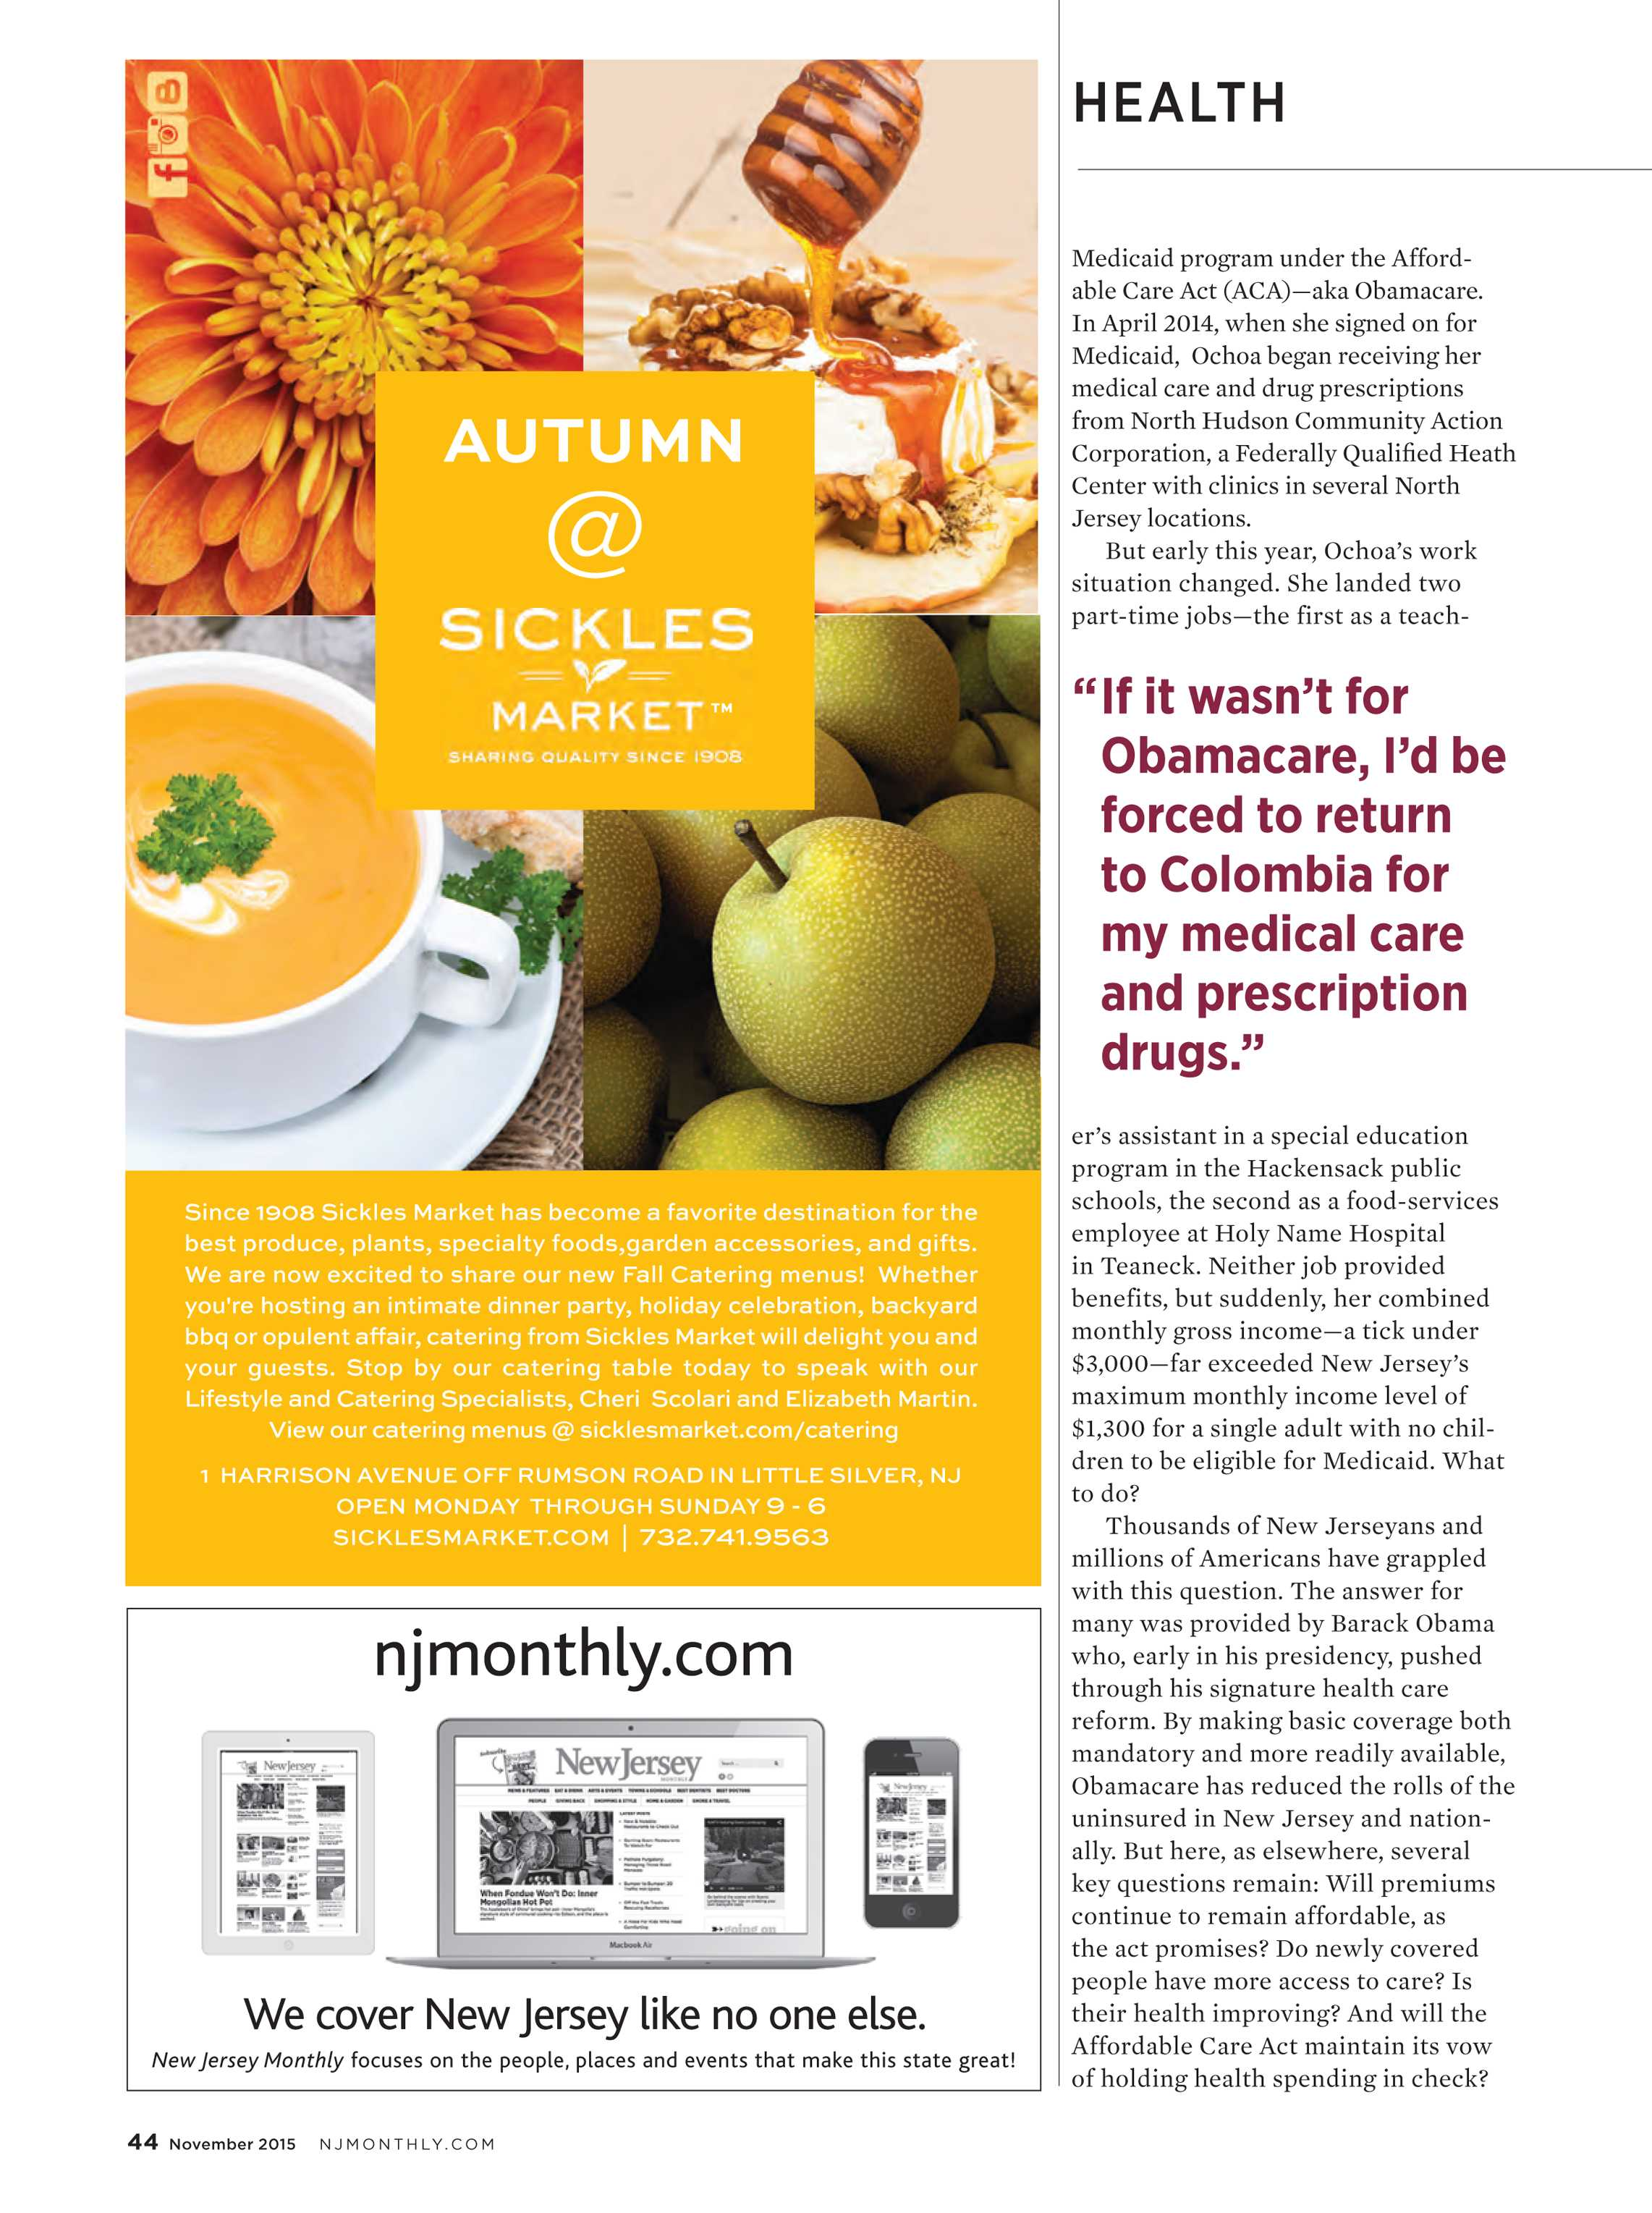 NJ Monthly - November 2015 - page 44